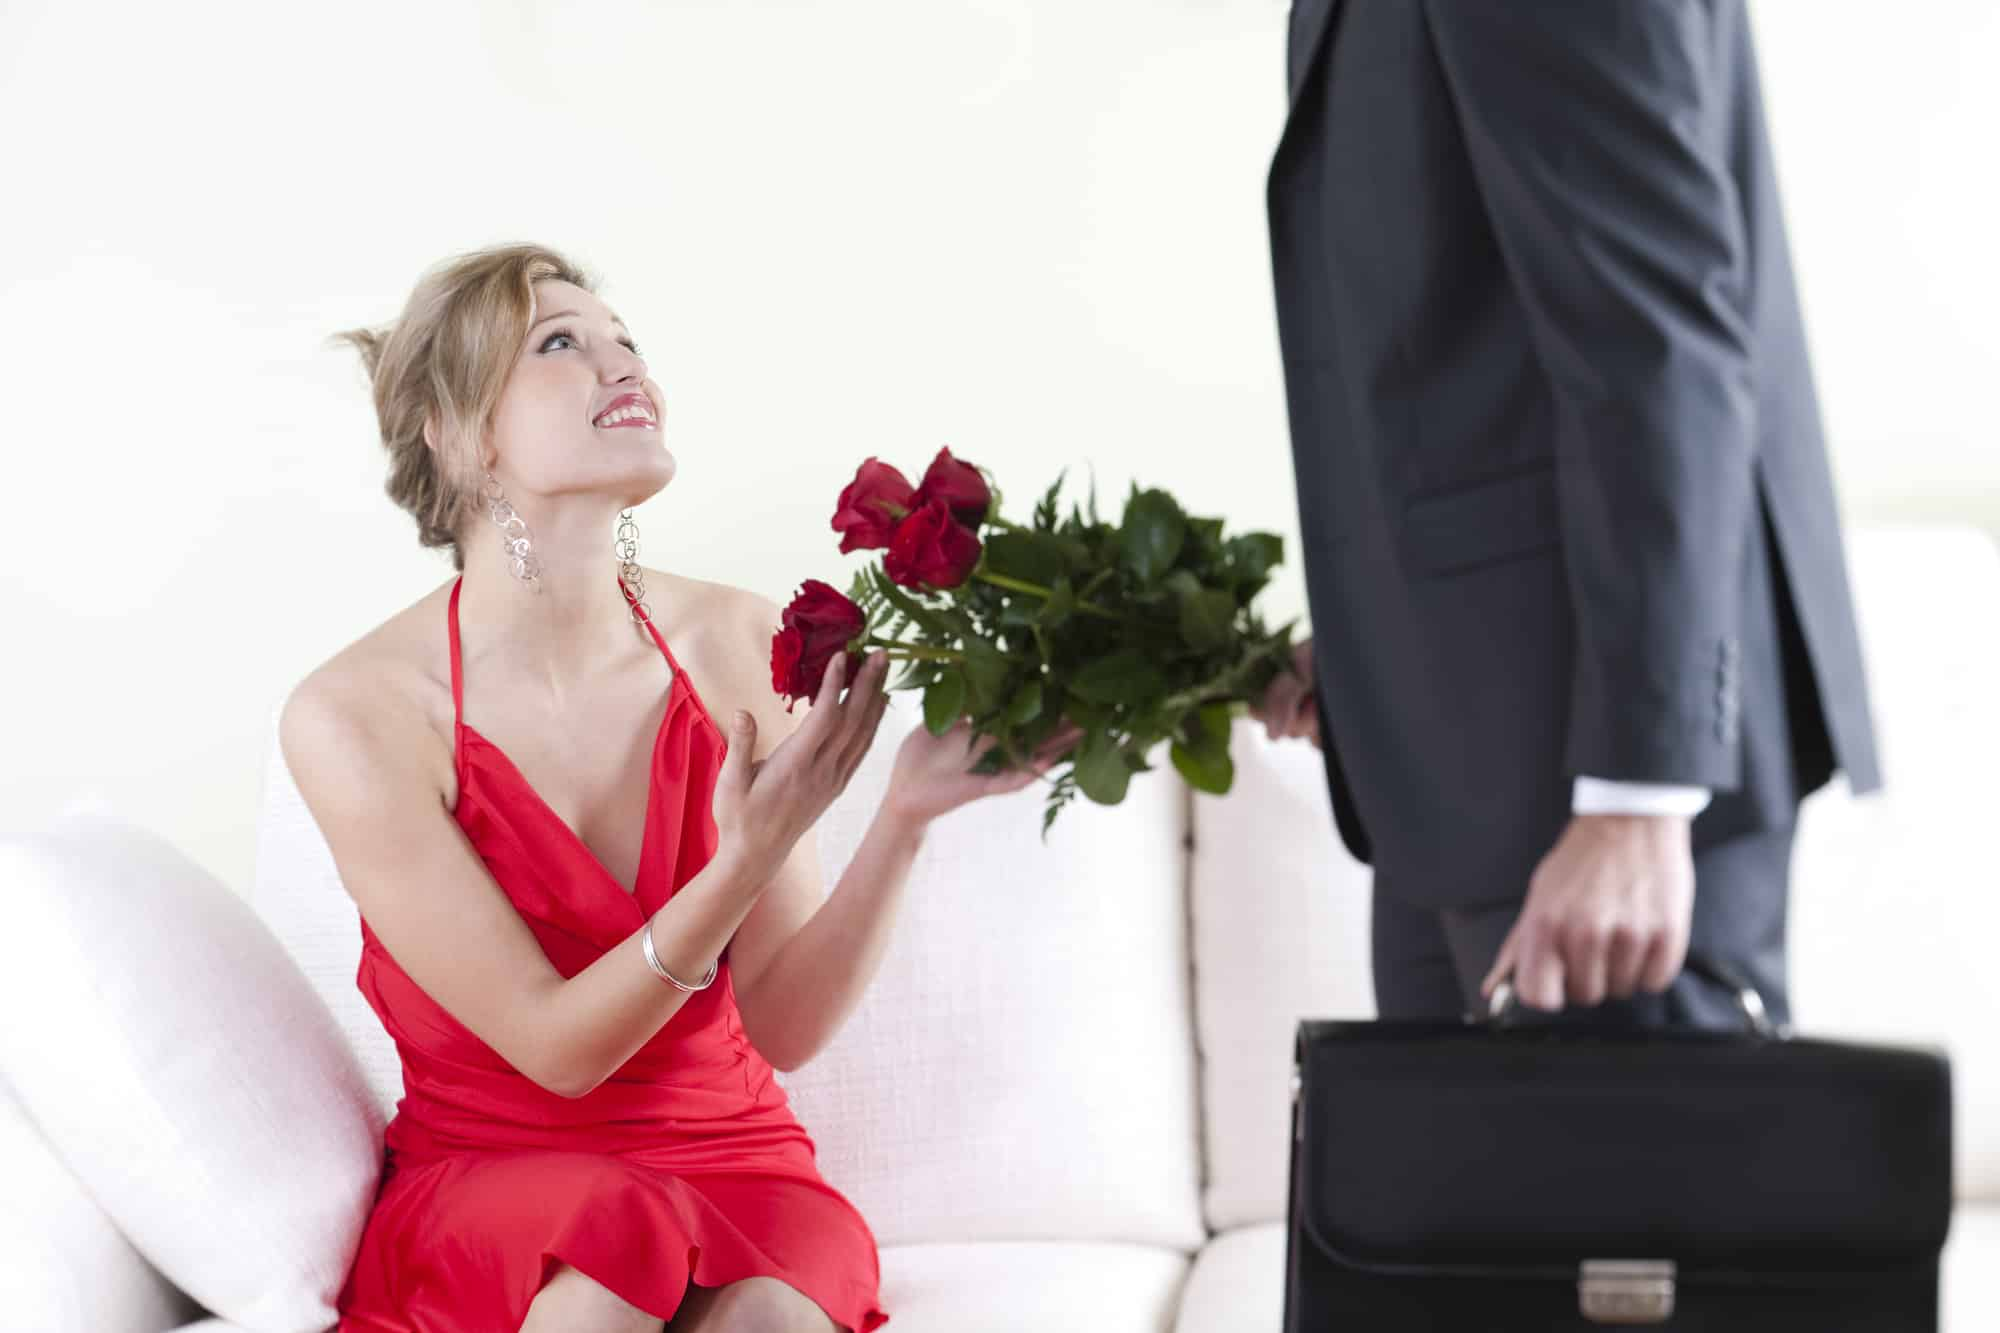 When Will He Propose? (10 Signs To Look For) - AskApril